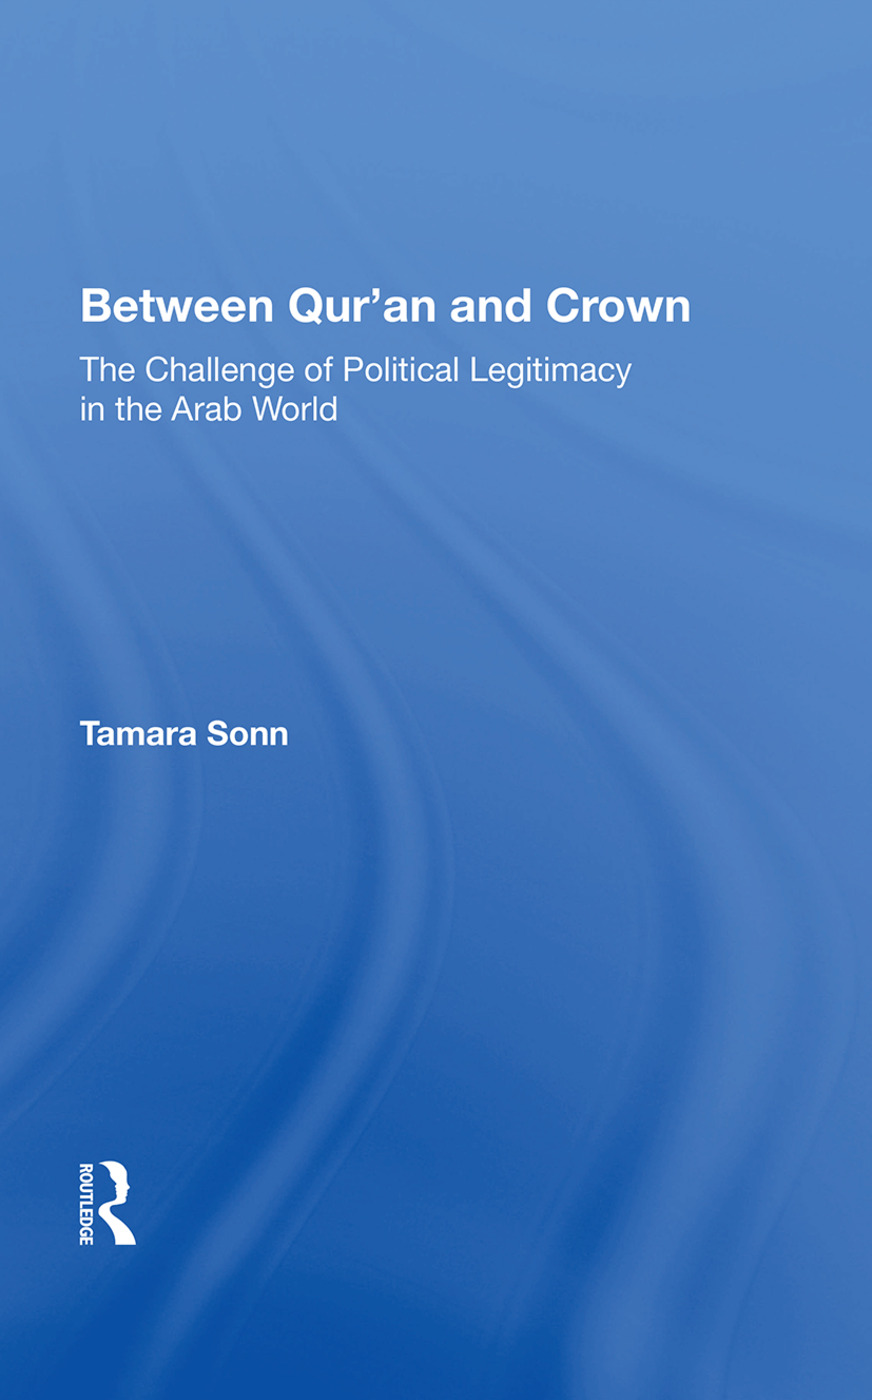 Between Qur'an and Crown